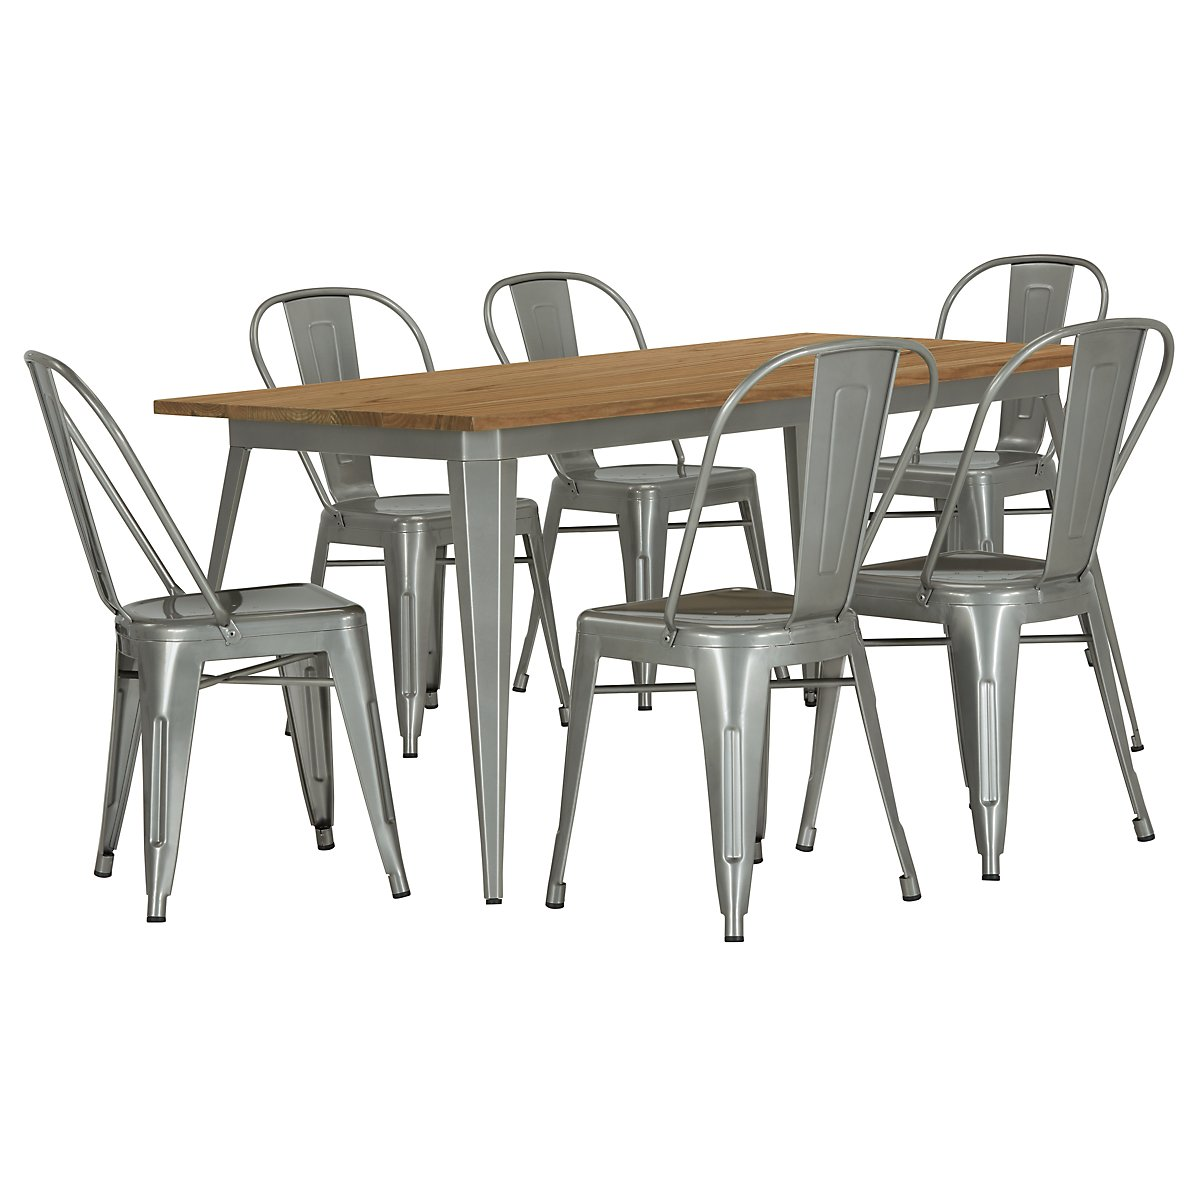 Huntley Light Tone Metal Table & 4 Metal Chairs